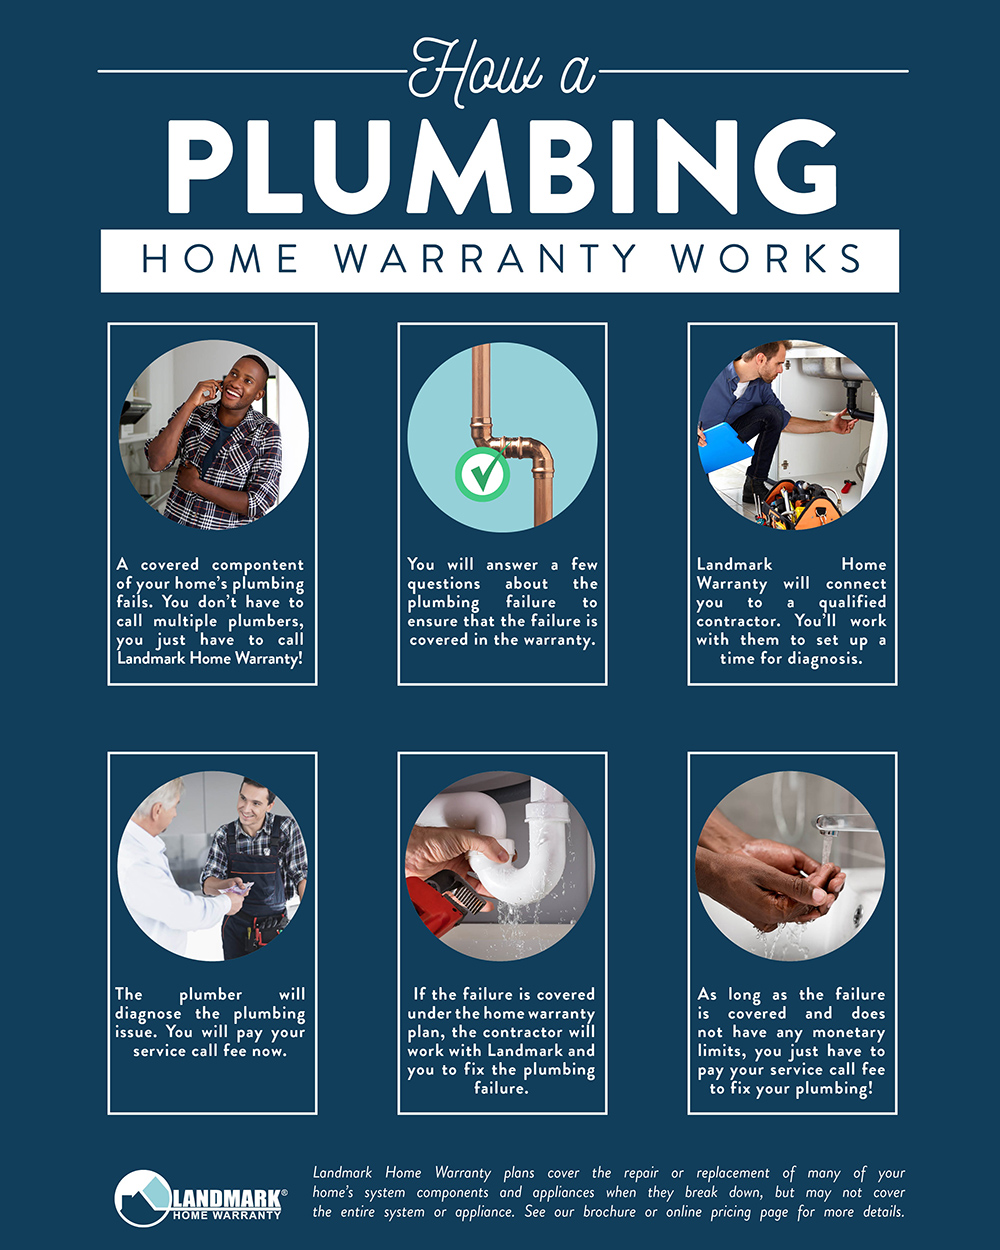 How a plumbing home warranty plan helps protect your home's plumbing system.